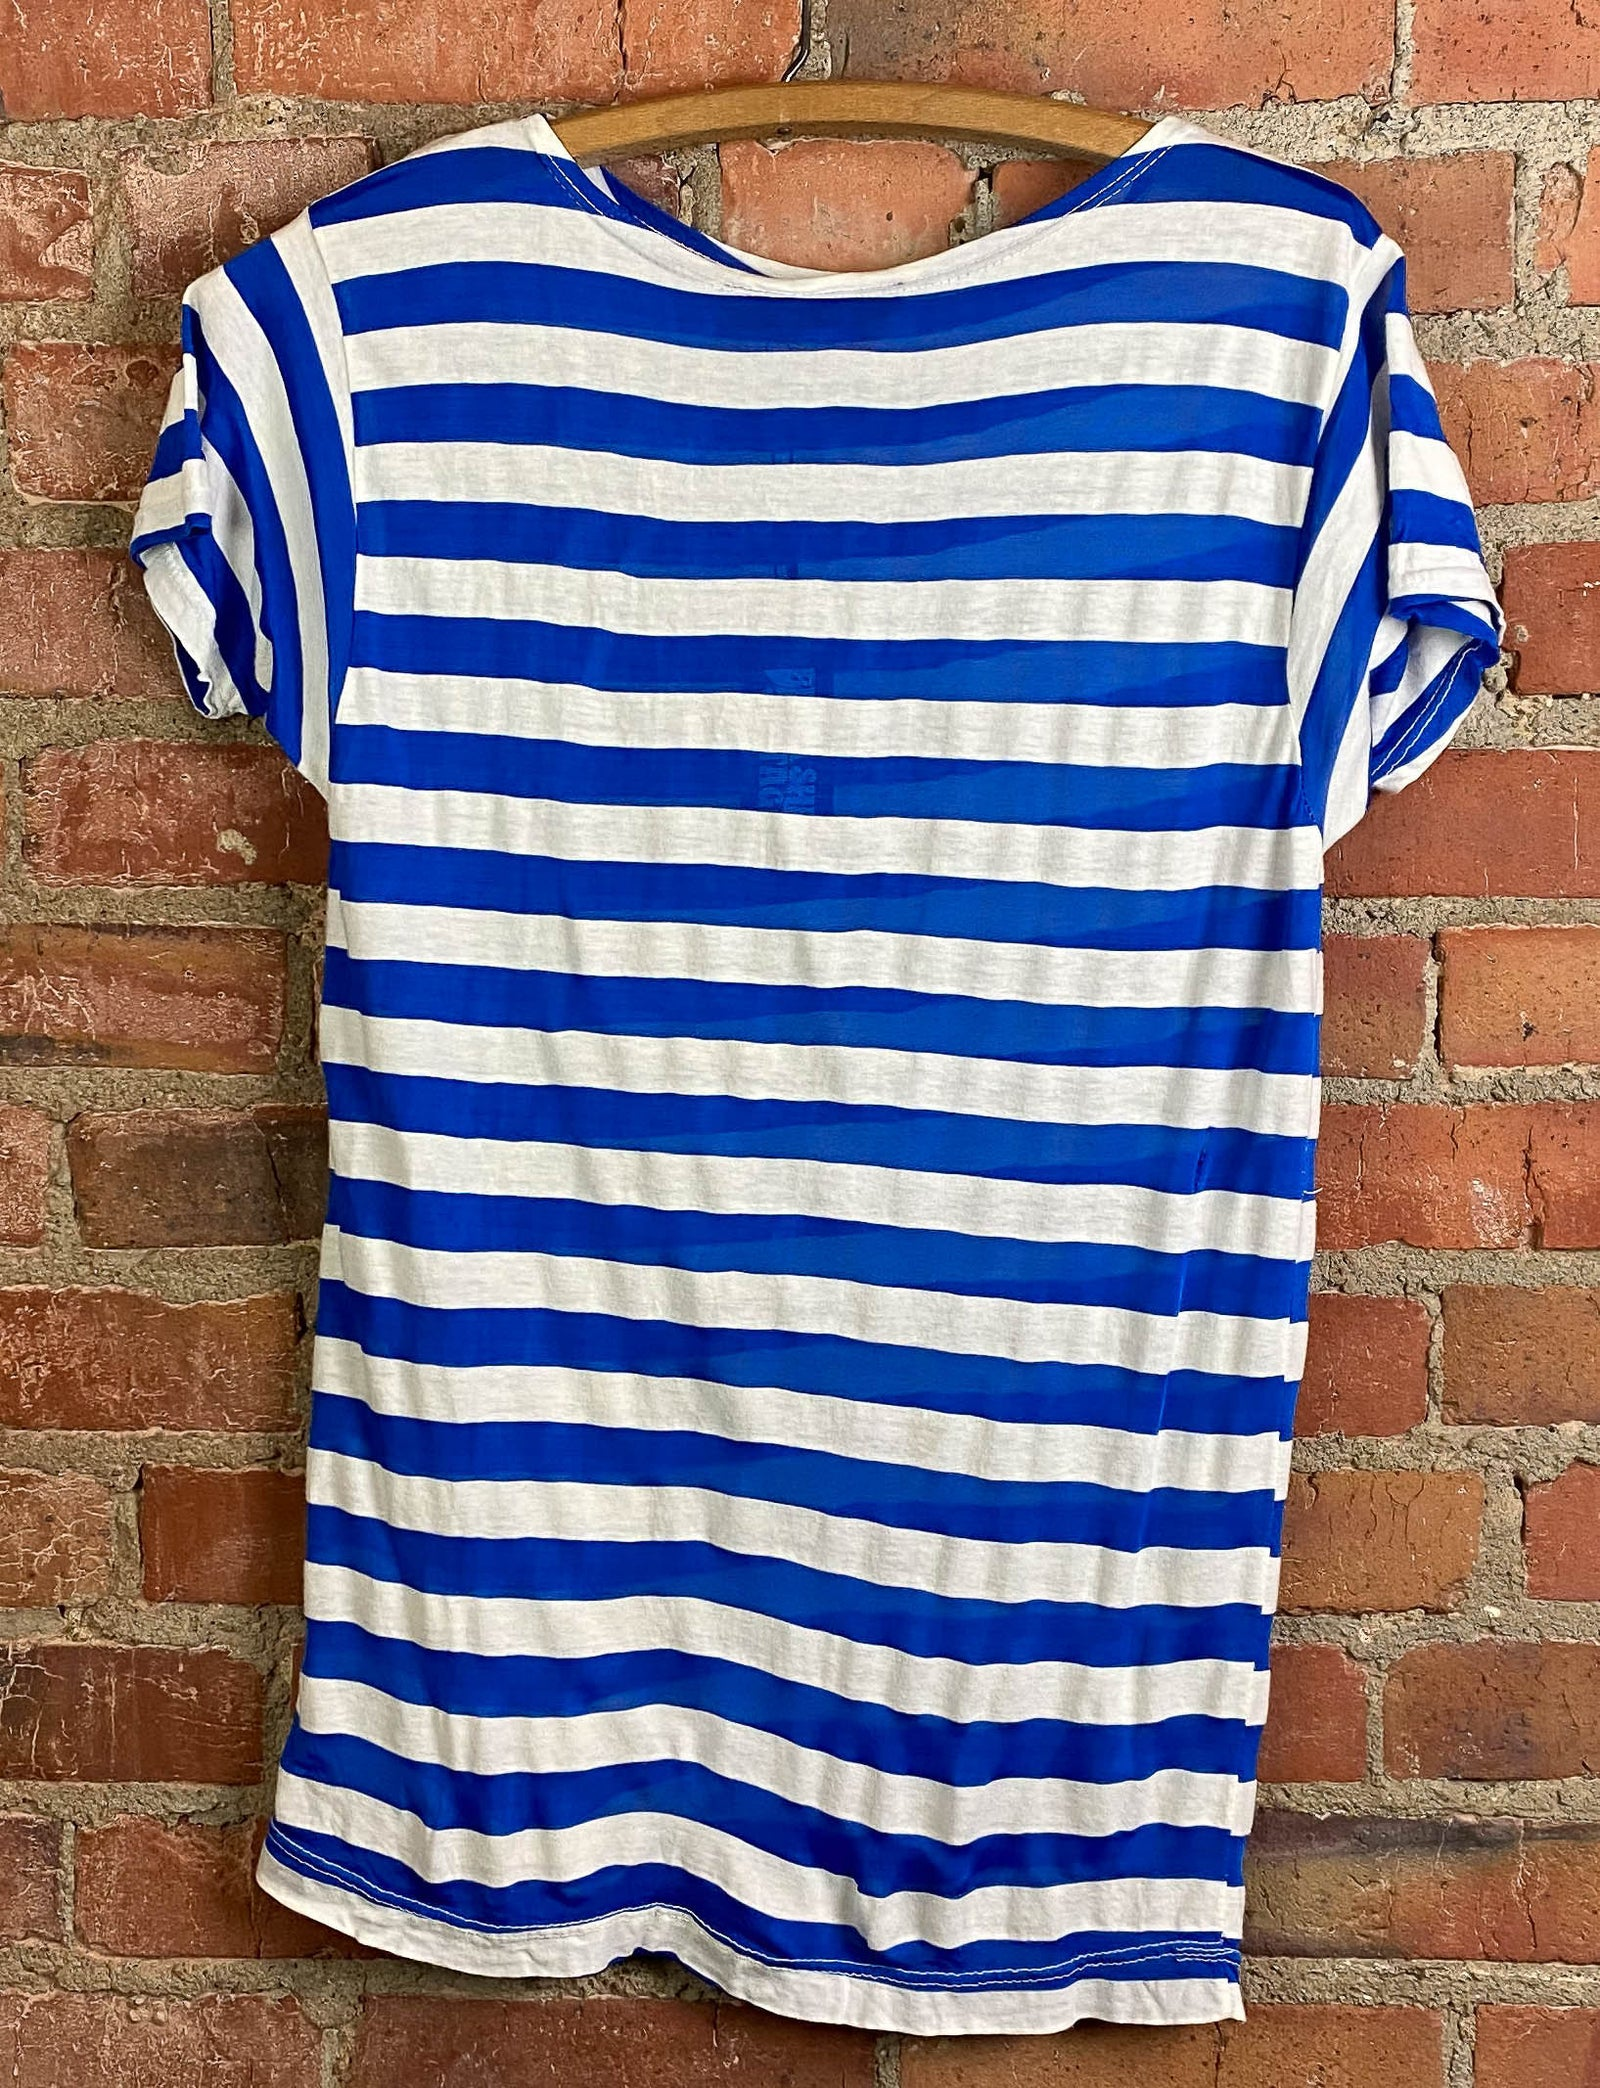 Vintage 80's Kennsington Blue Graphic T Shirt Rayon Striped White Blue Unisex Small